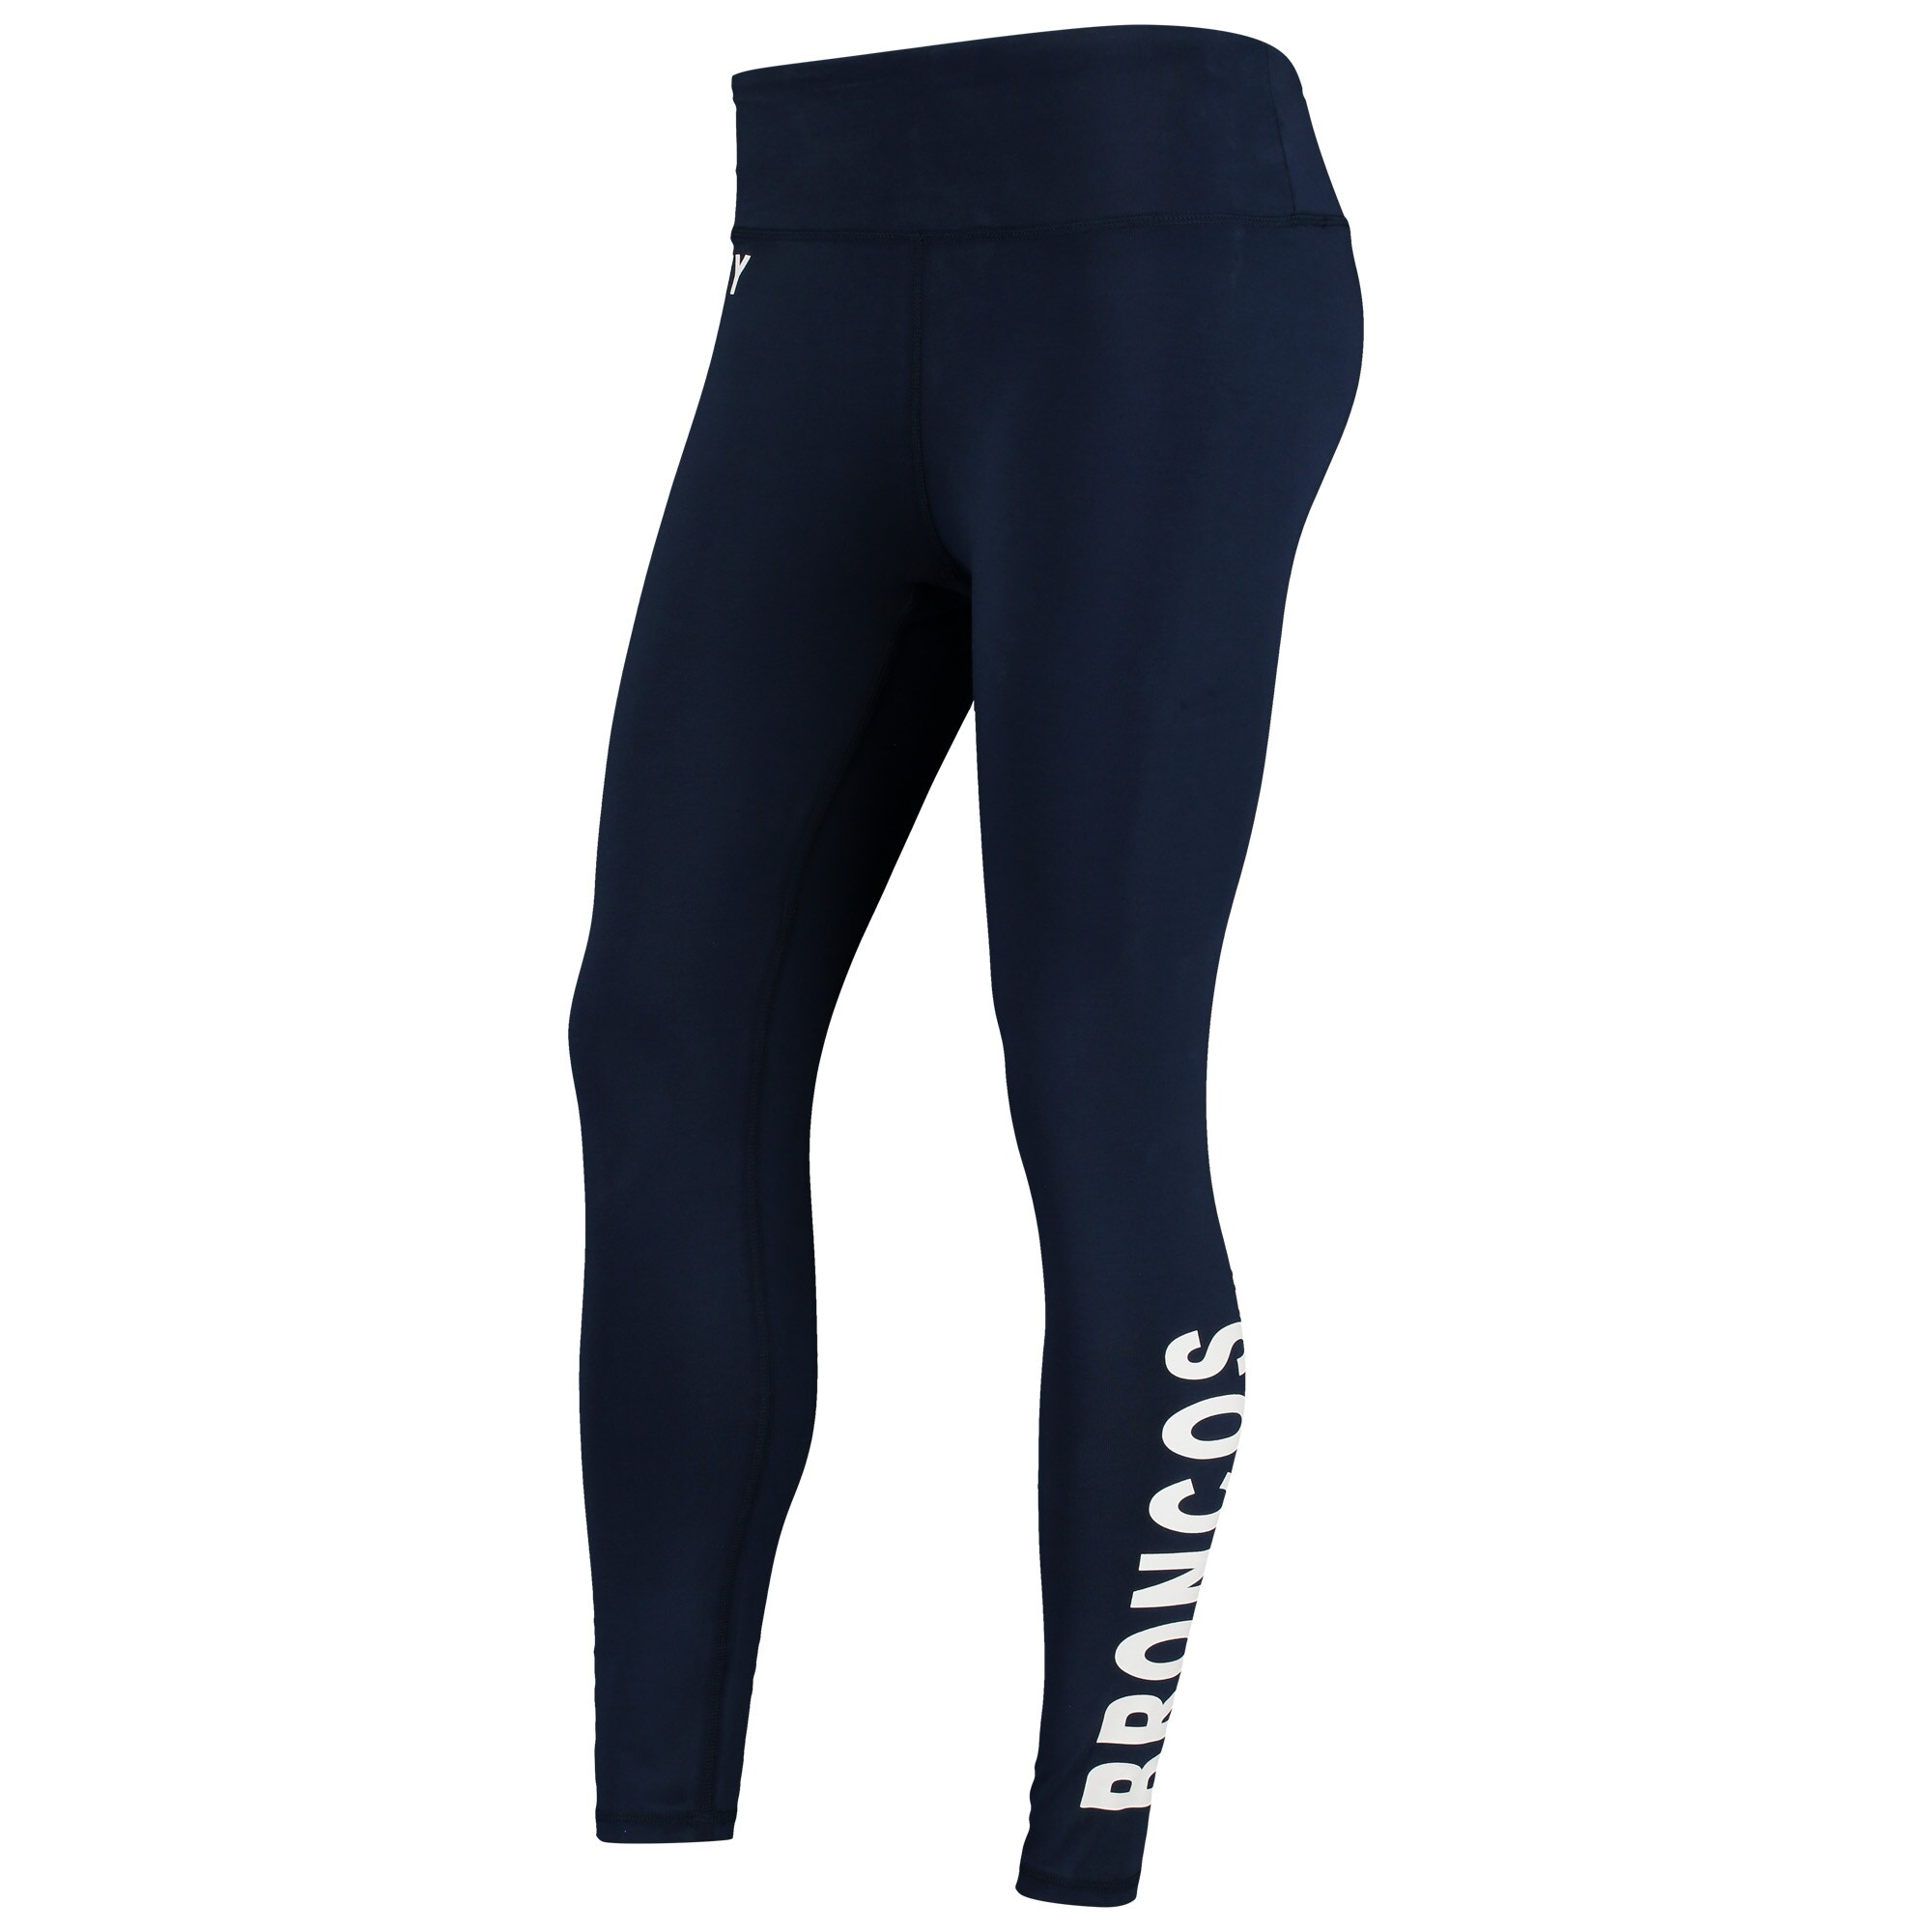 Denver Broncos DKNY Sport Women's Zen Leggings - Navy